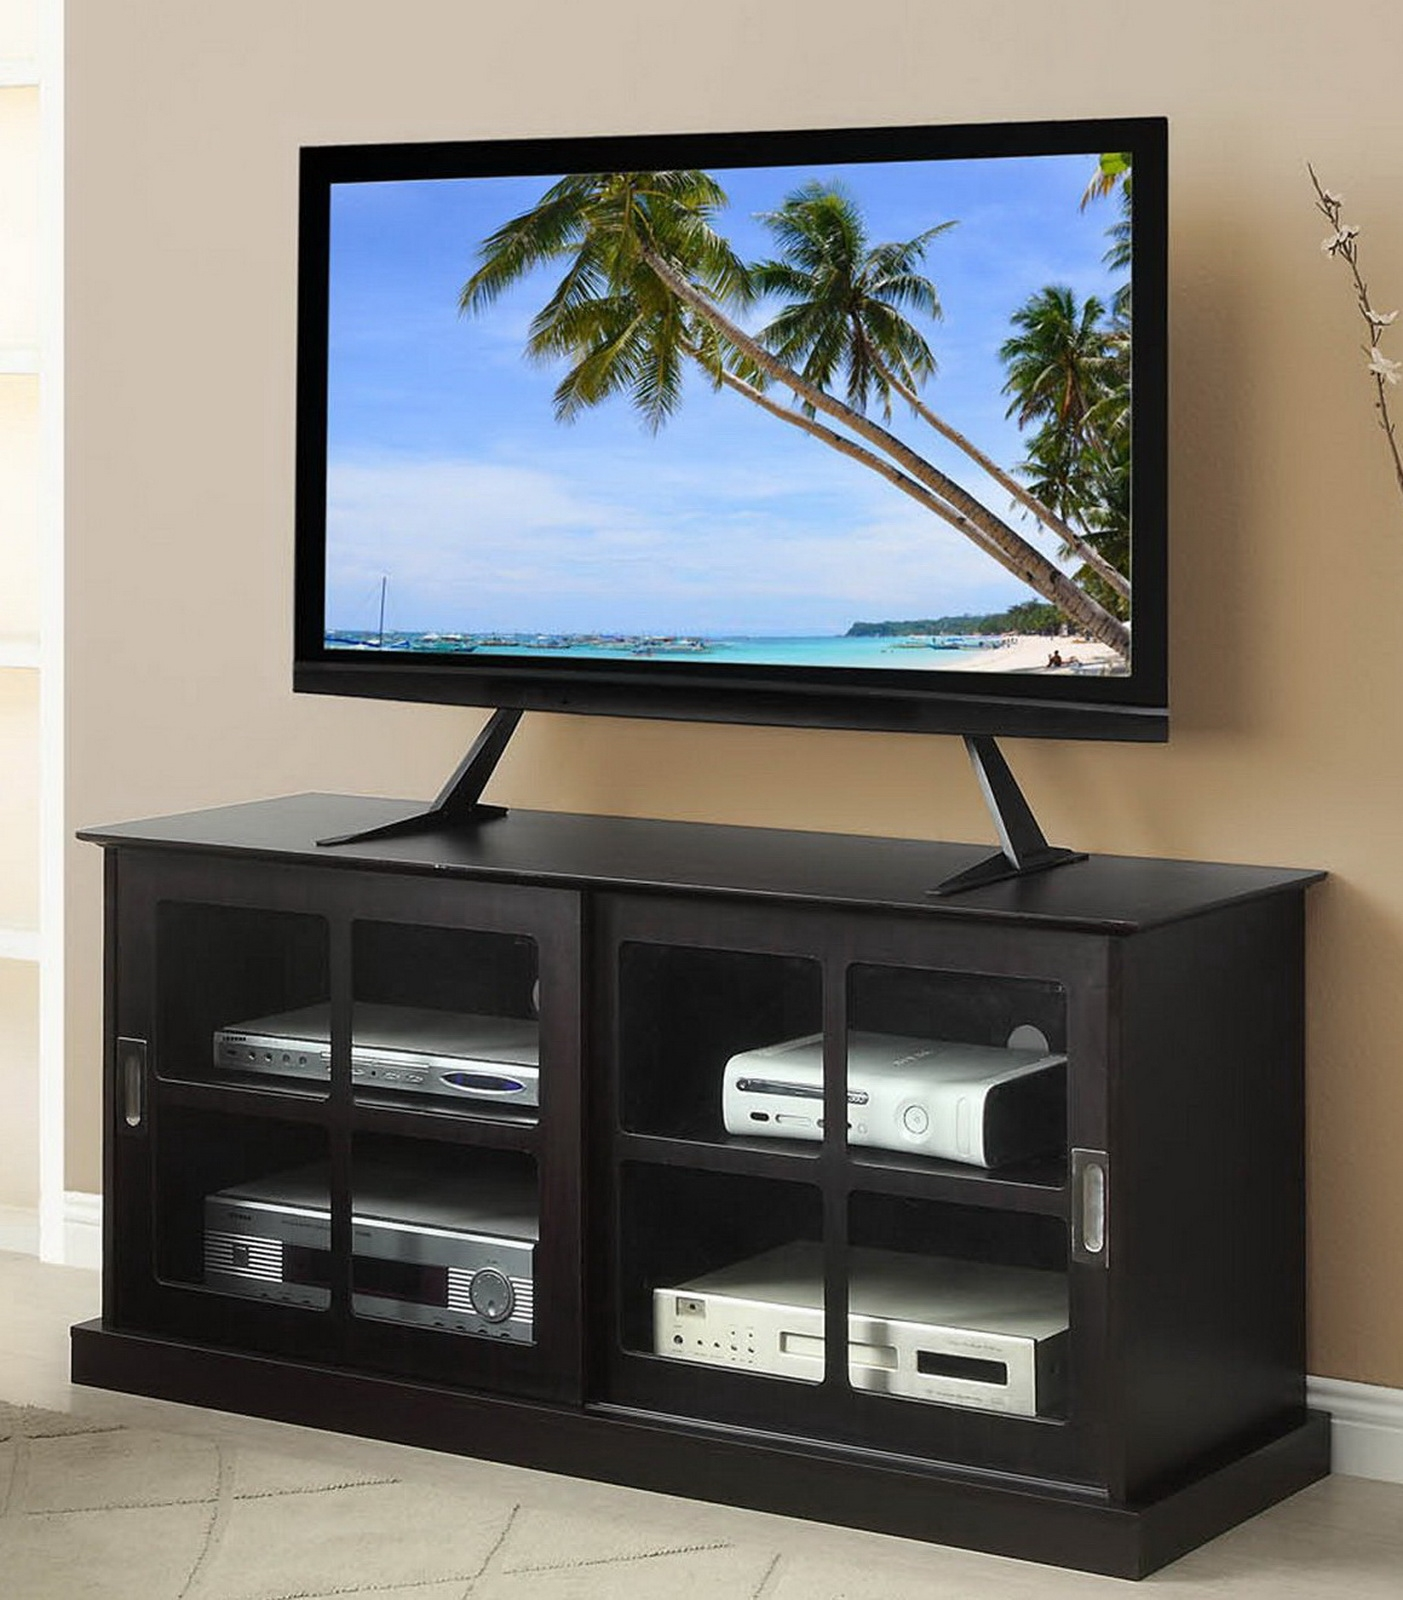 Flat Screen Tv Stands New Table Top Flat Screen Tv Stand Up To 42